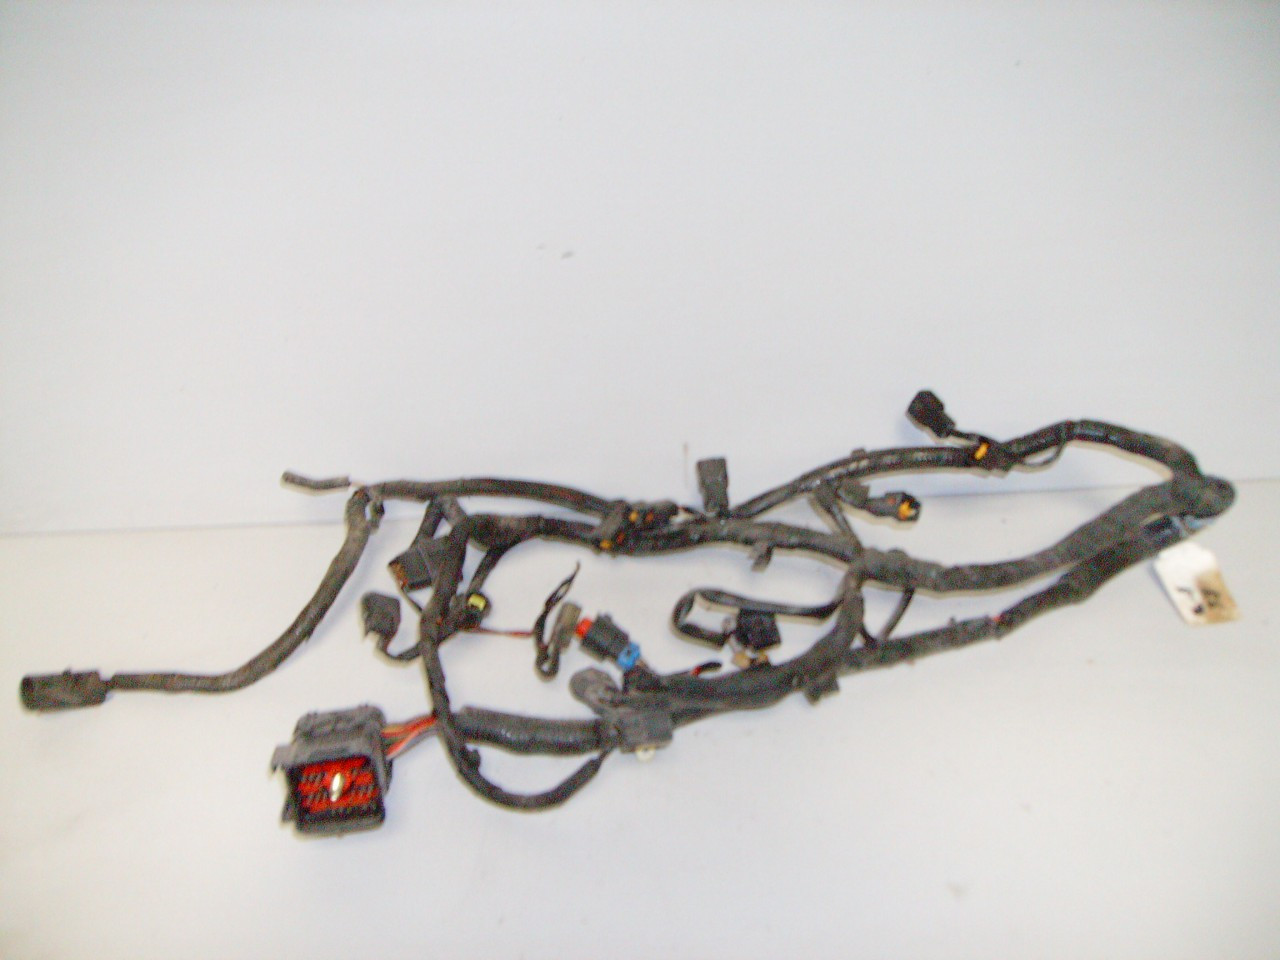 1996 1998 ford mustang 3 8 engine injection wire harness lx v6 2000 mustang engine diagram [ 1280 x 960 Pixel ]